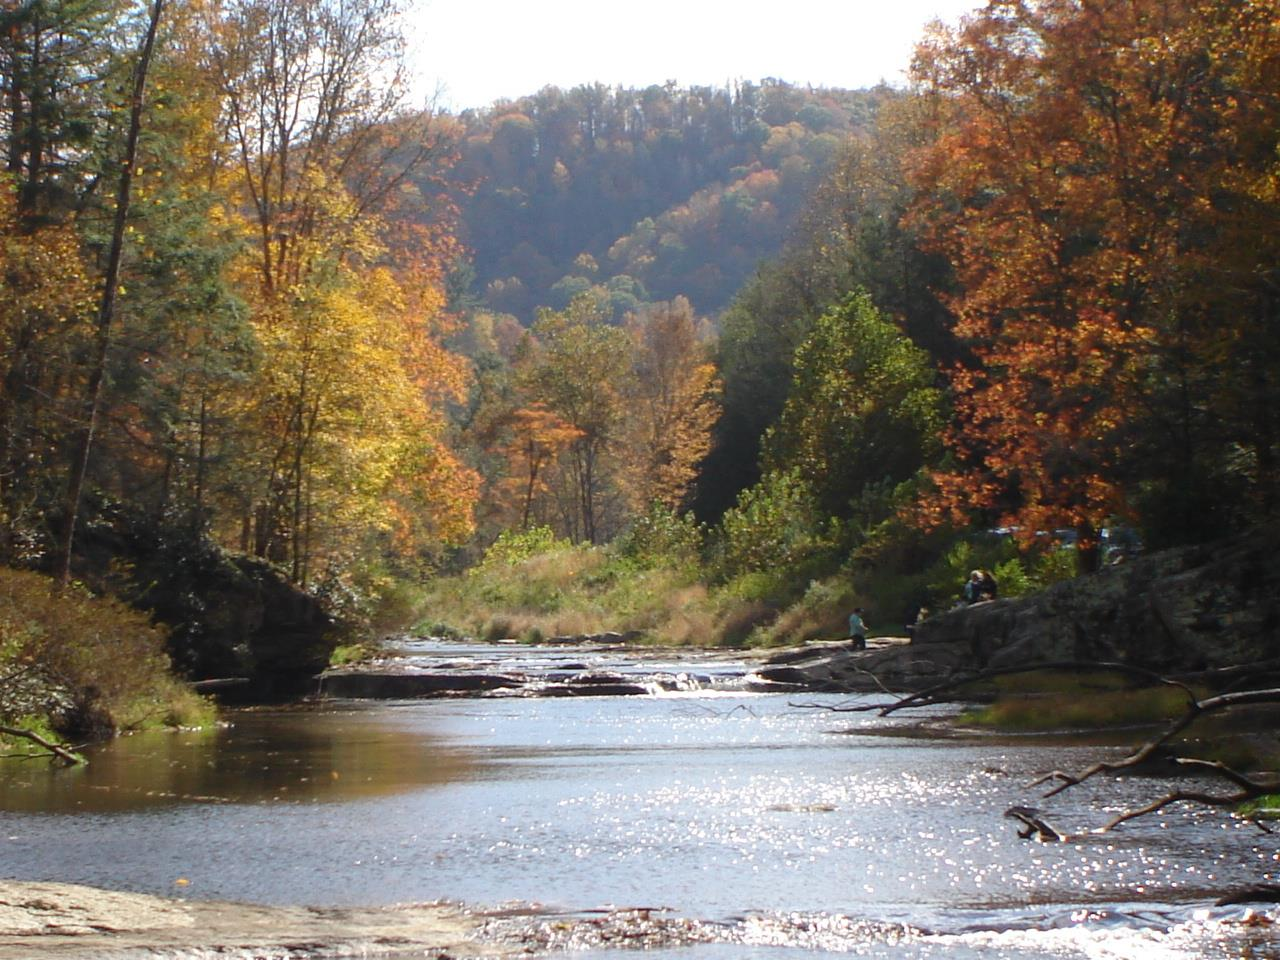 Located near Beech Mountain and Banner Elk is the impressive Elk River  in Pisgah National Forest (Appalachian/Toecane Ranger District) near the small town of Elk Park.